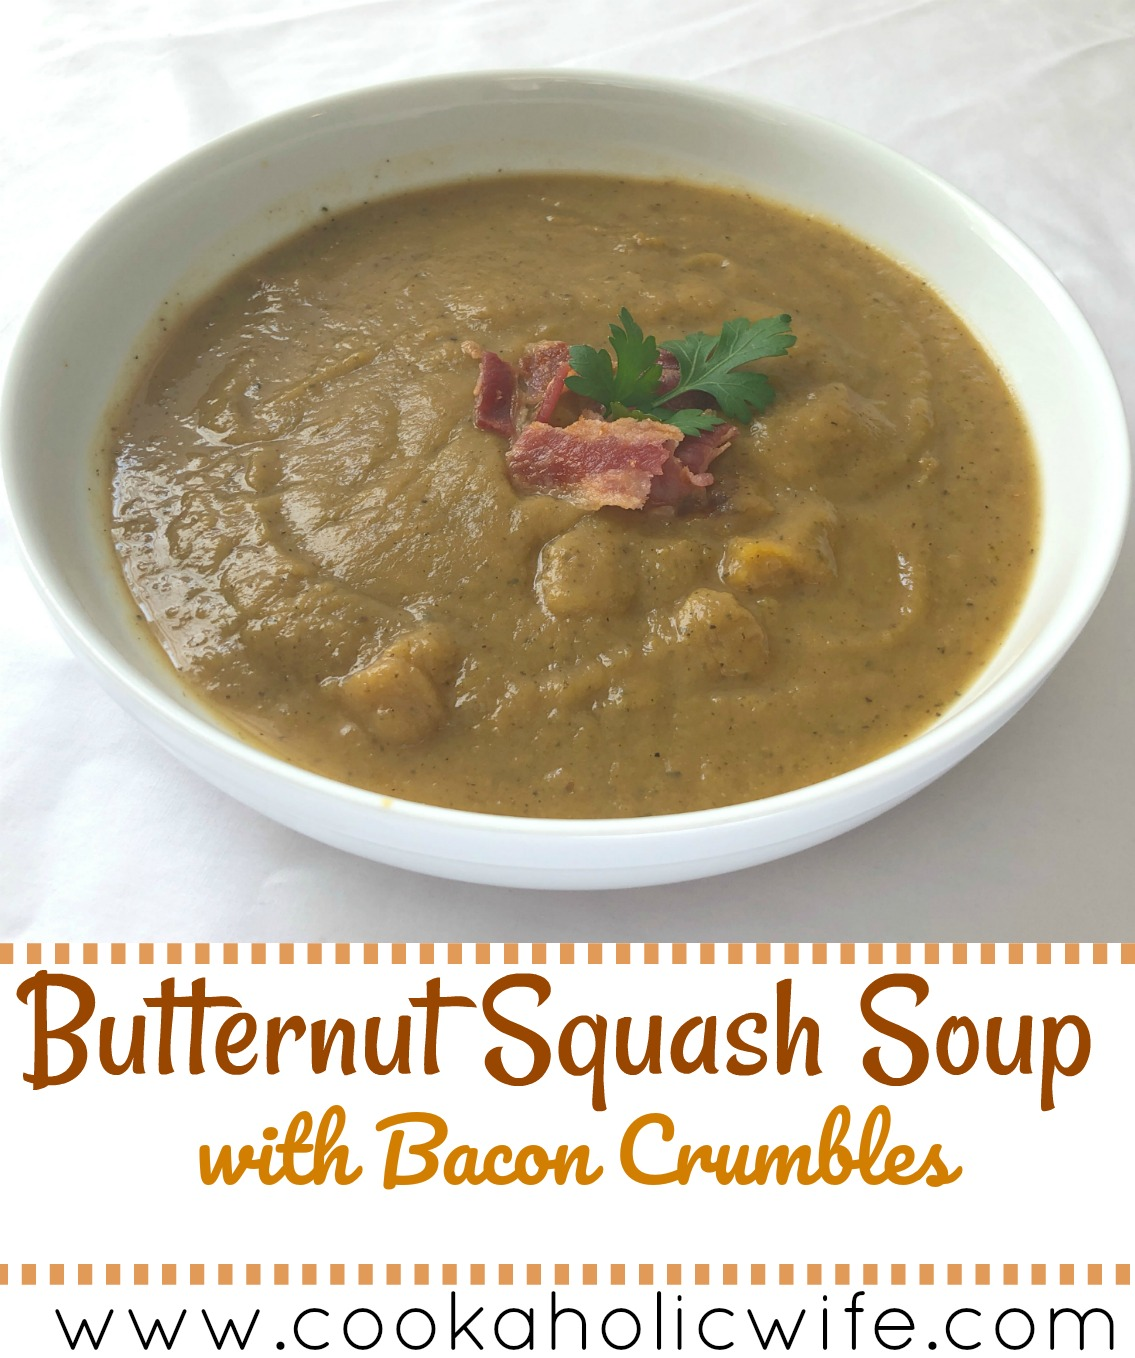 Improv Cooking Challenge: Butternut Squash Soup with Bacon Crumbles